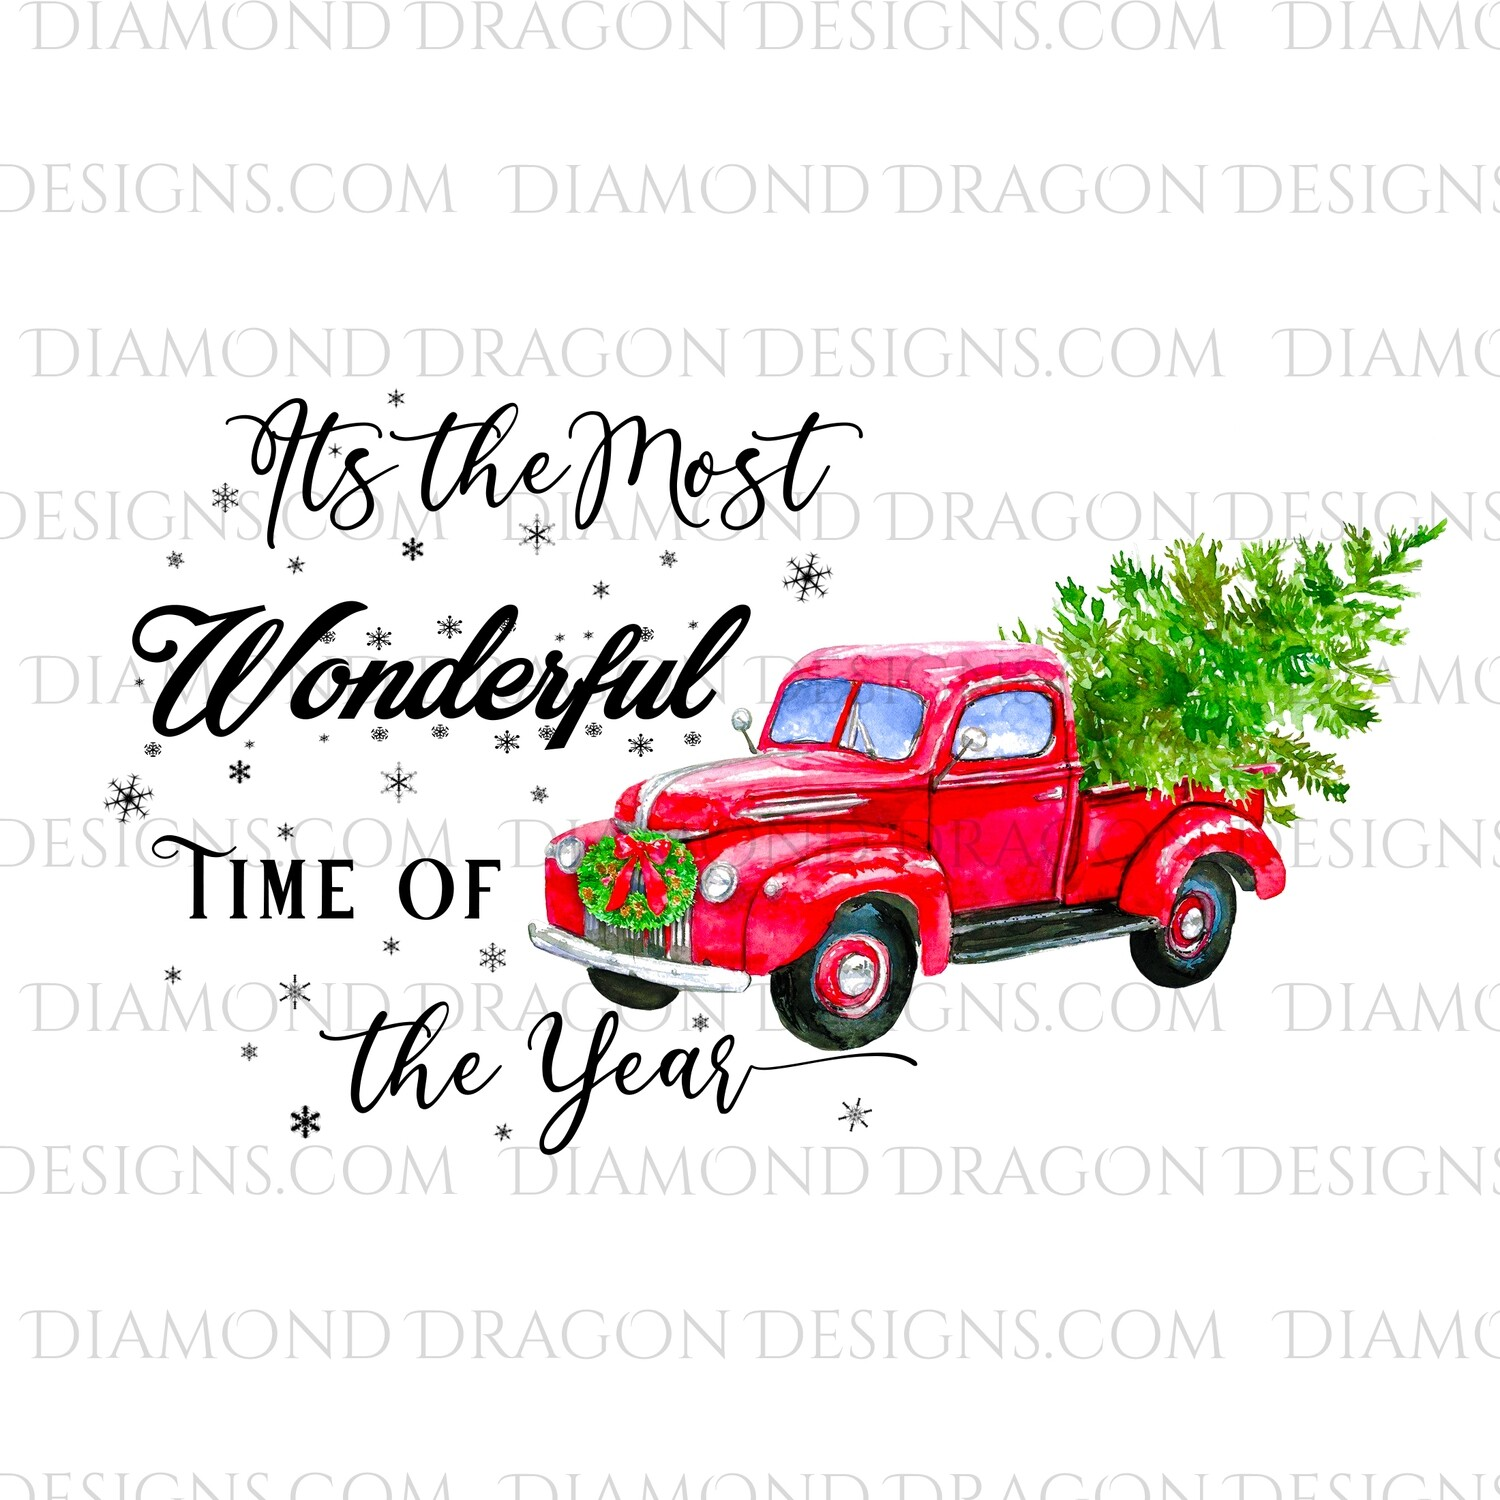 Christmas - Red Truck, Christmas Tree, It's the most wonderful time, Red Vintage Truck 4, Digital Image